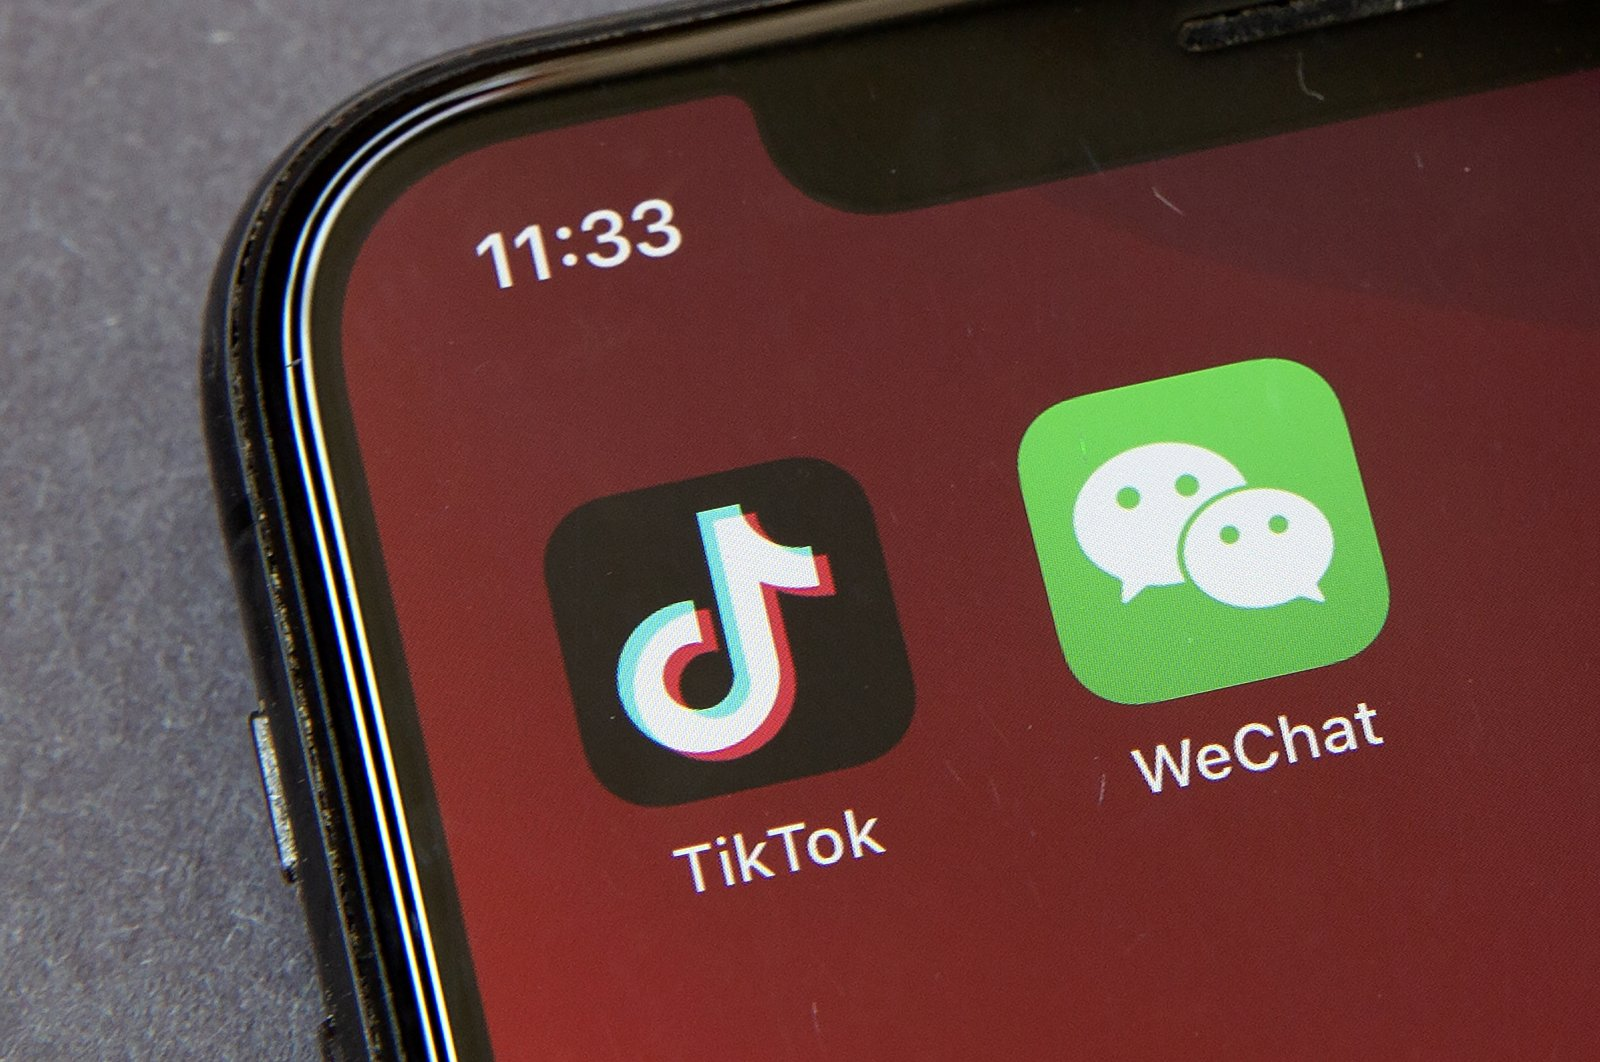 Icons for the smartphone apps TikTok and WeChat are seen on a smartphone screen in Beijing, China, Aug. 7, 2020. (AP Photo)